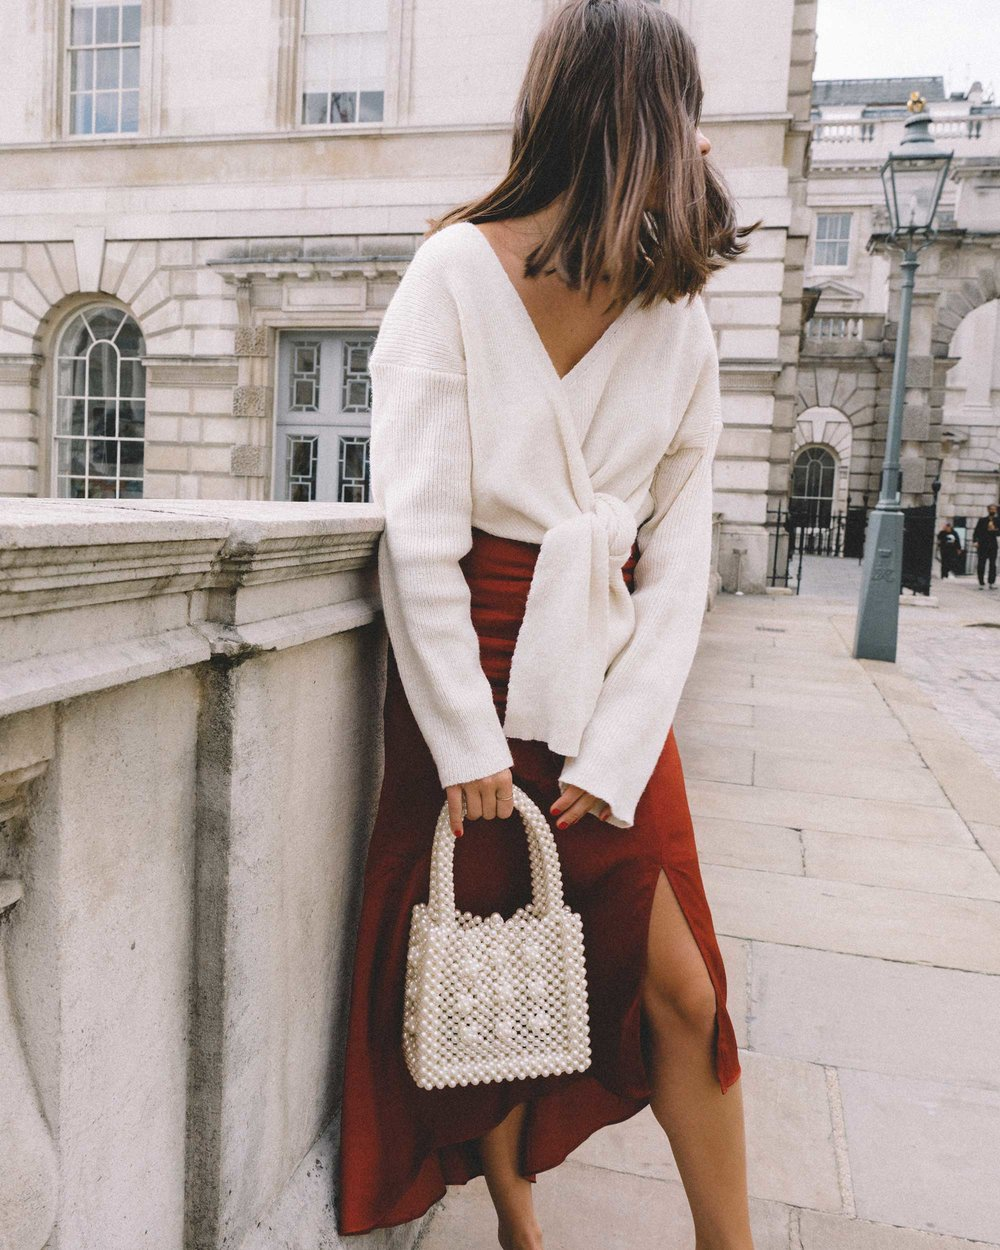 & Other Stories Asymmetric Slit Midi Skirt, Faux Pearl Handbag, Tied knot front Sweater london streetstyle outfit4.jpg